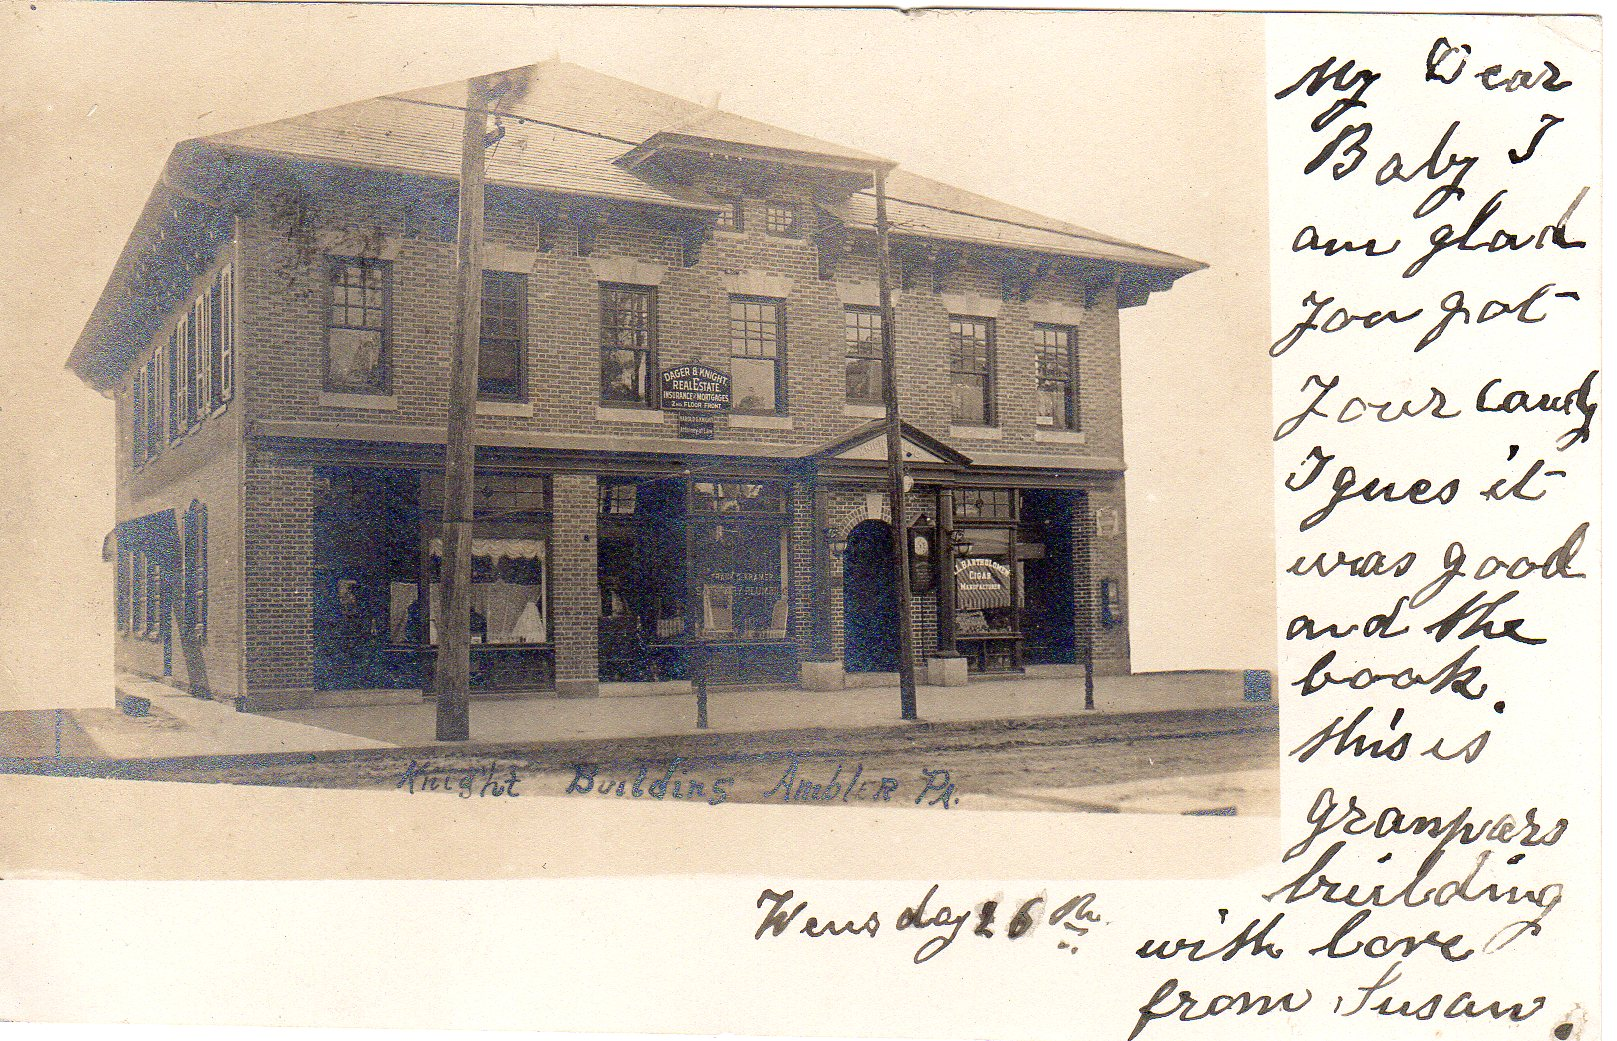 Post Card Collection (E Simon)_2682_51_Knight Building, Ambler, Pa_26 Apr 1906